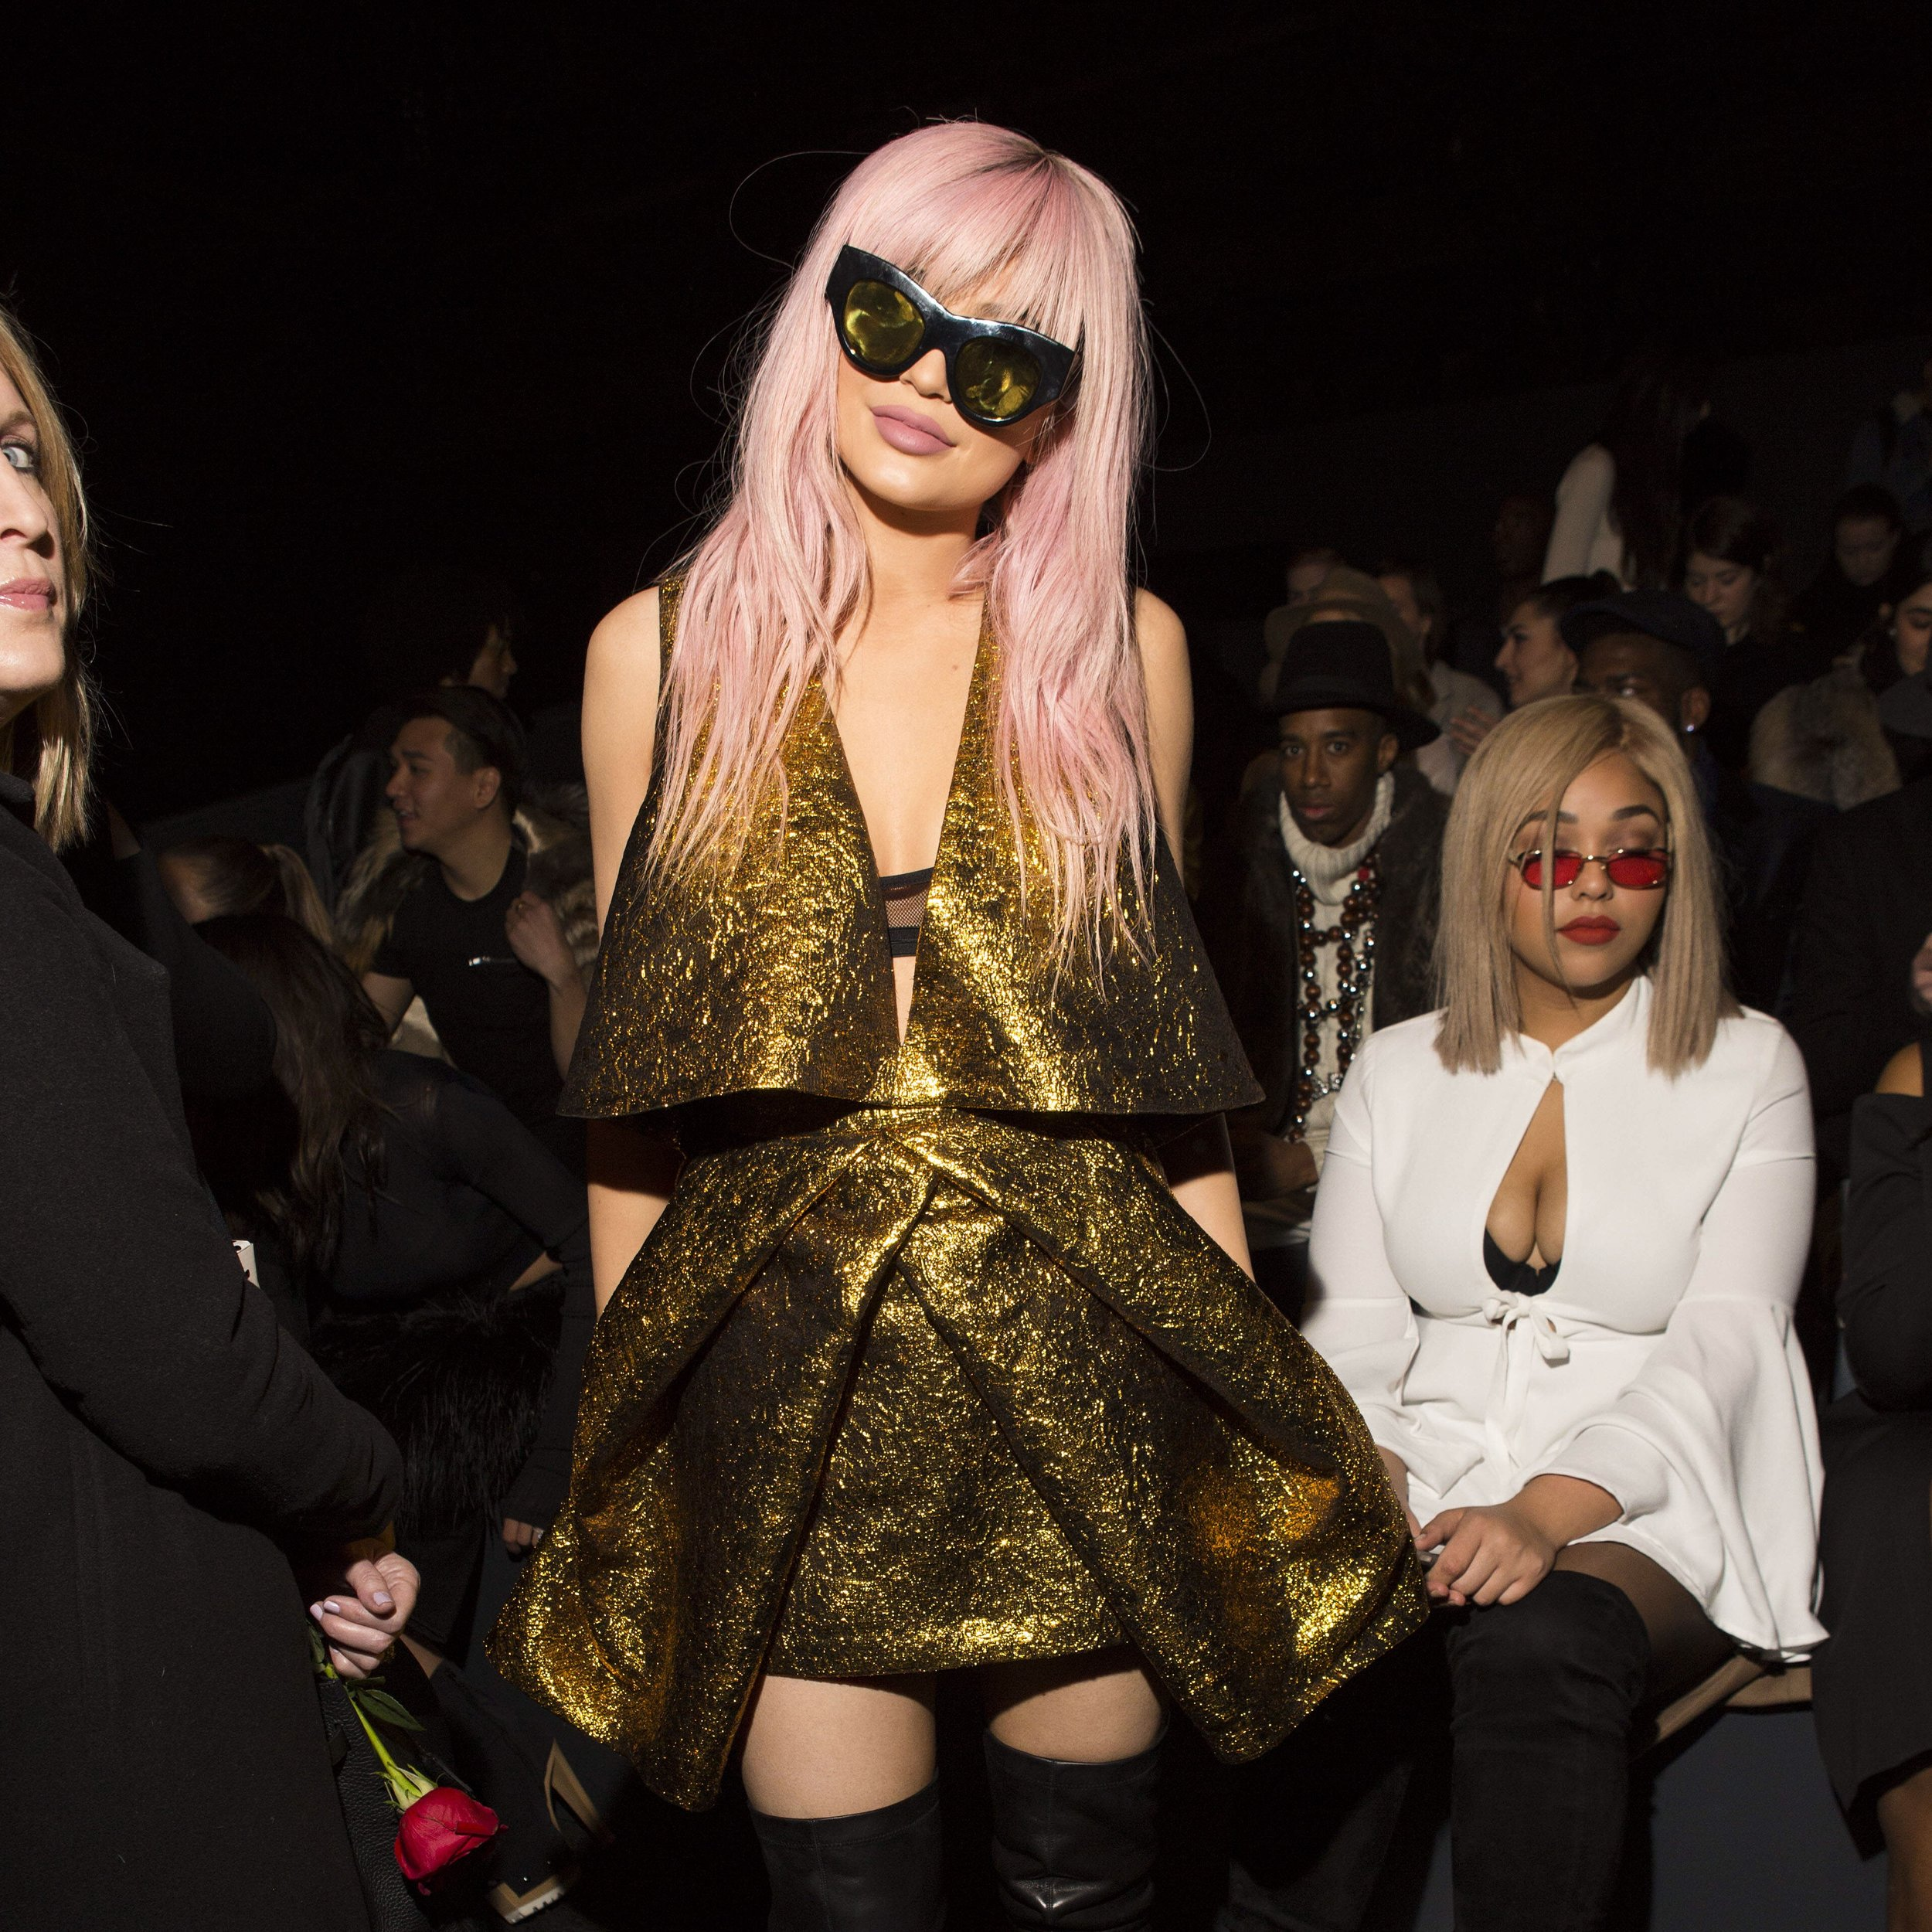 Klyie Jenner Front Row at NYFW